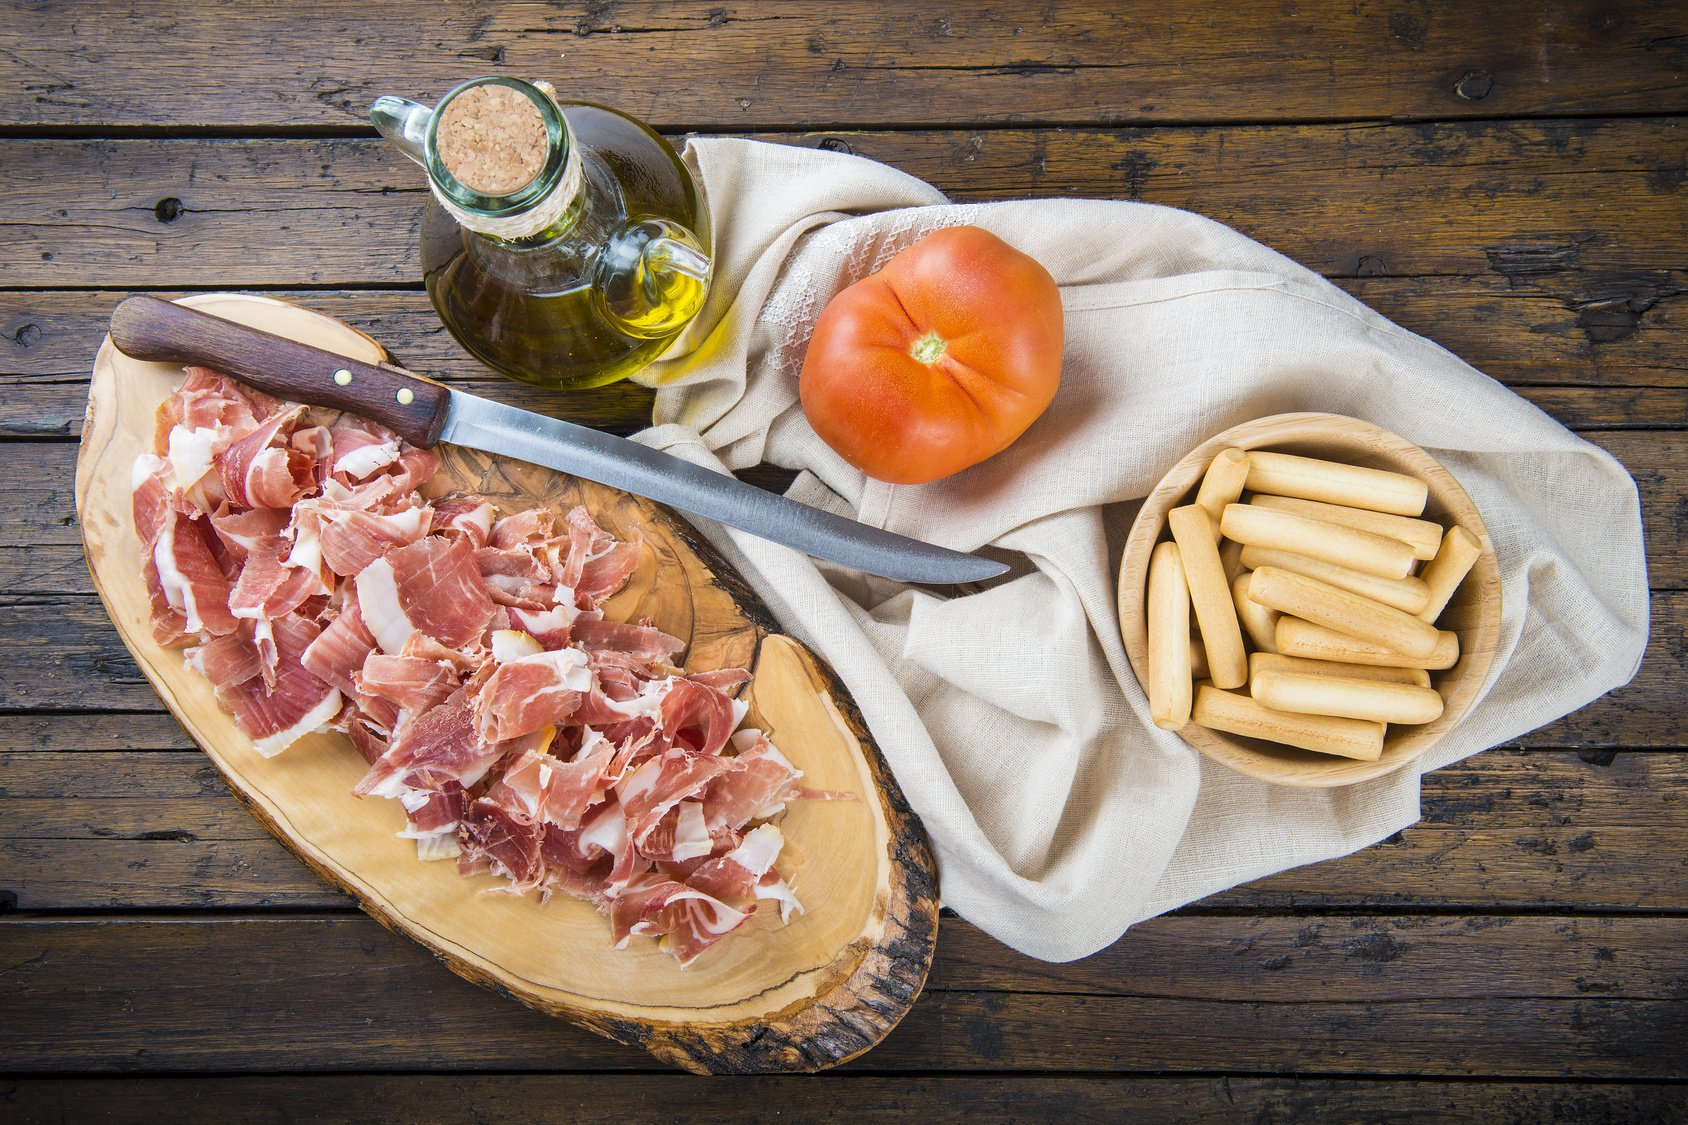 Love Iberico - Iberico Ham de Bellota 100% Pure Aged for 4 years, Bone-in Reserva, Between 30-35 Servings, 15-17 lbs from Fermin Plus Ham Holder and Ham Knife by Fermin Embutidos